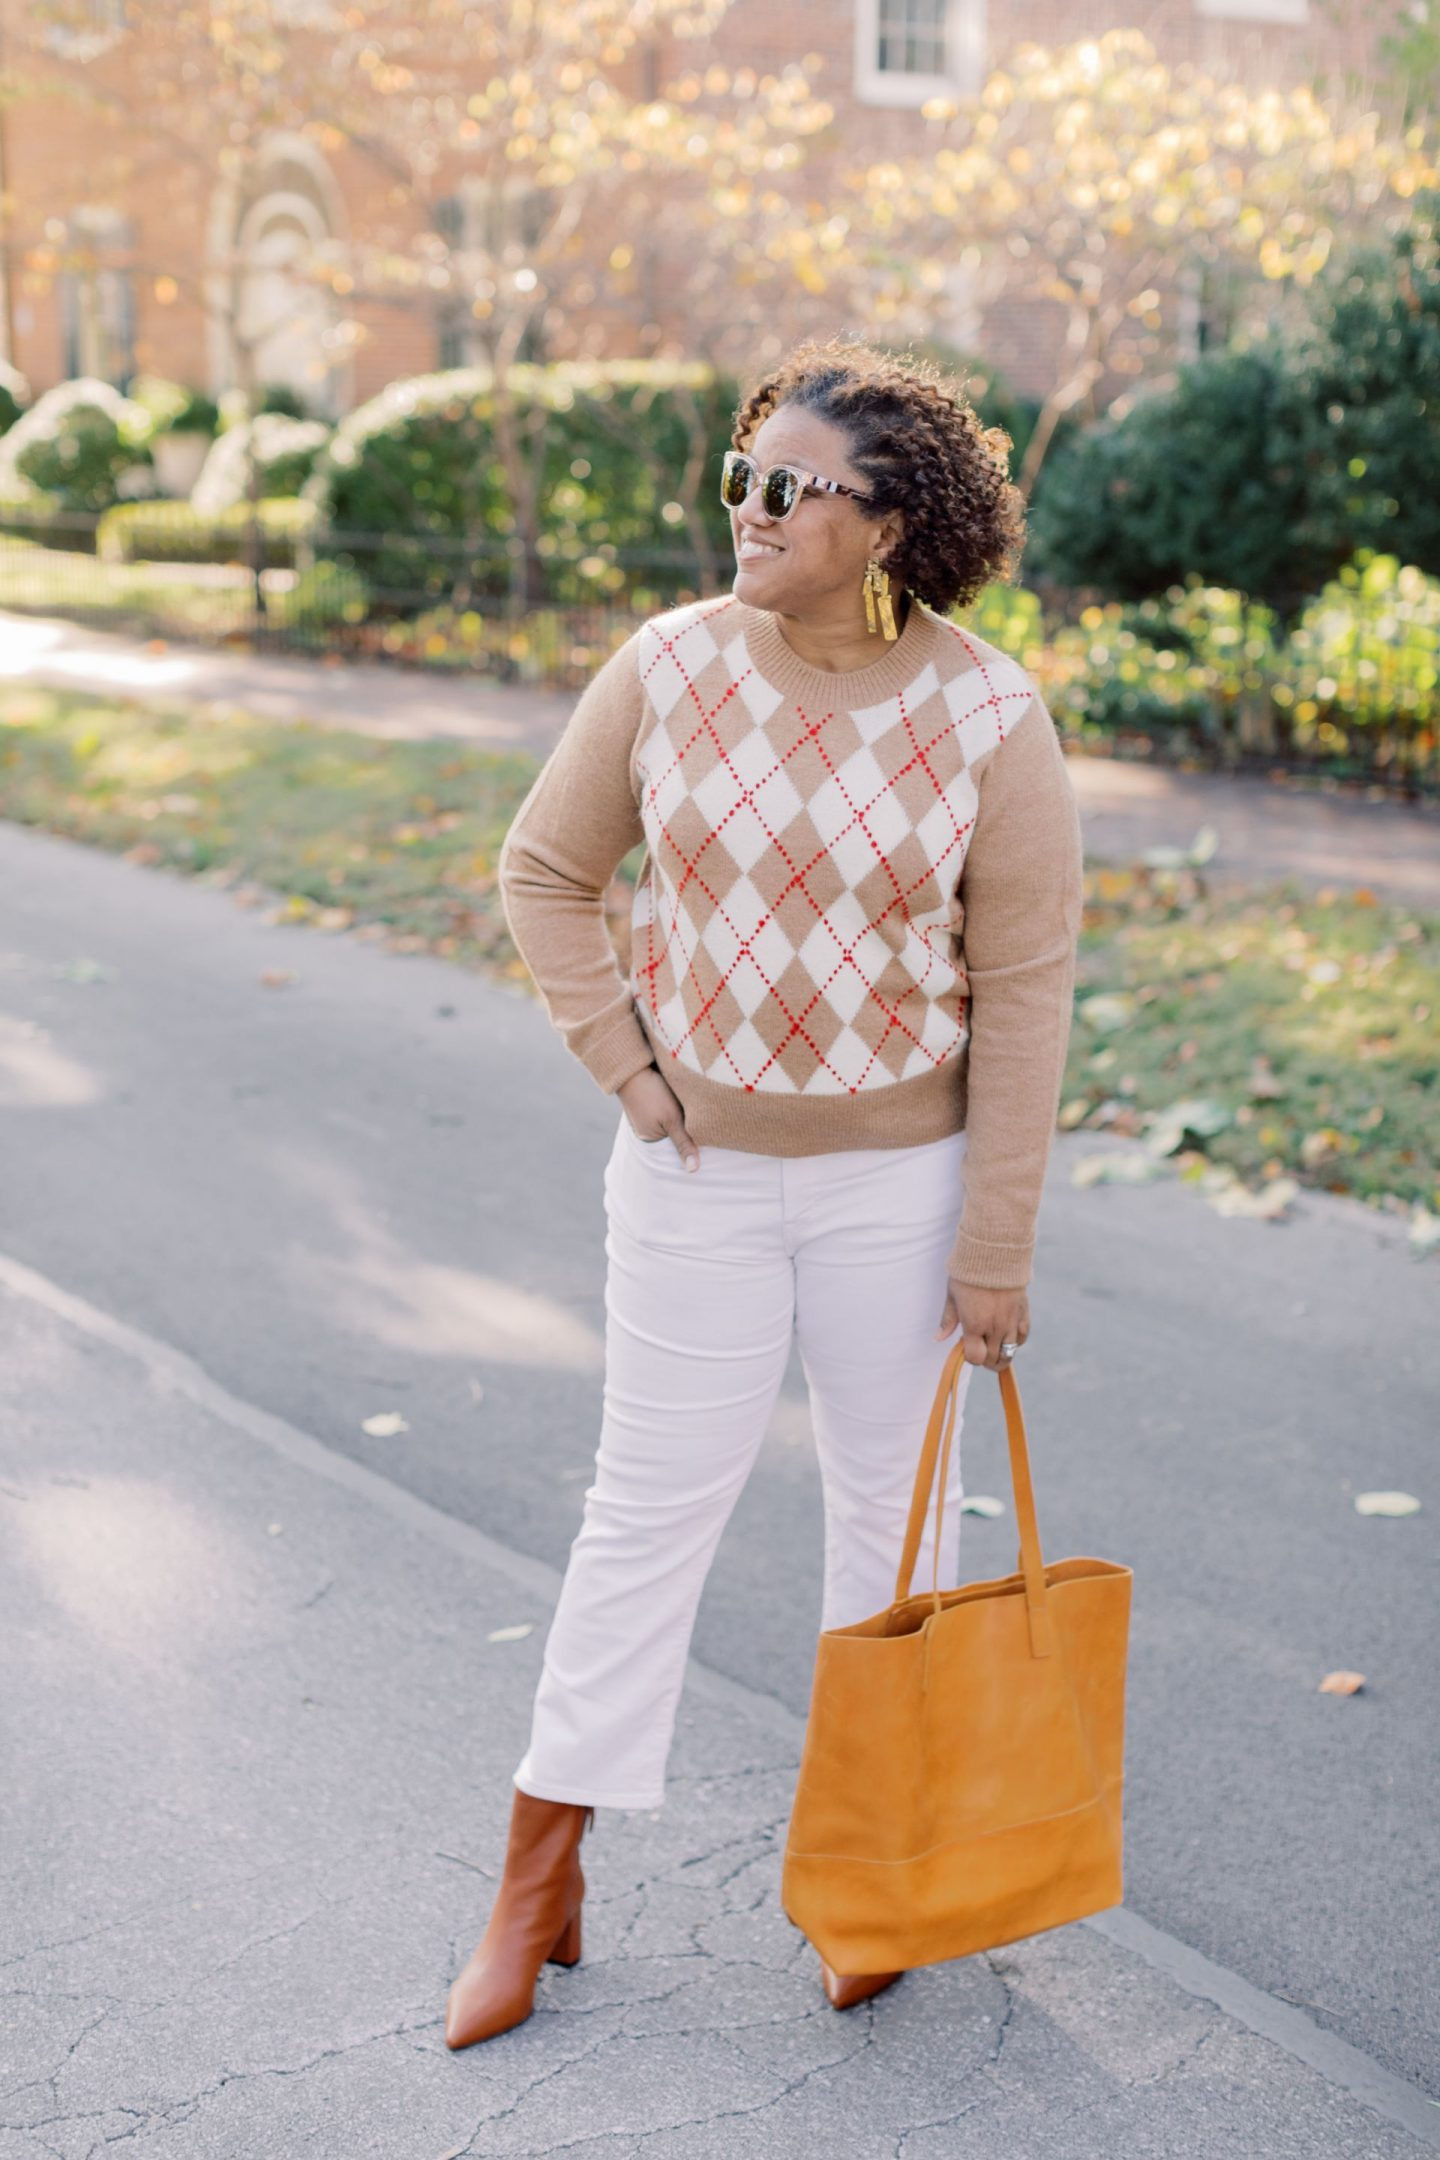 Wearing White After Labor Day by popular Kentucky fashion blog, Really Rynetta: image of a woman wearing a pair of Madewell Cali Demi-Boot Jeans in Pure White, white button up shirt, J. Crew Pointed-toe Sadie boots in leather, Kendra Scott Holland Statement Earrings, J. Crew Argyle cropped crewneck sweater, and holding a Able MAMUYE CLASSIC TOTE.